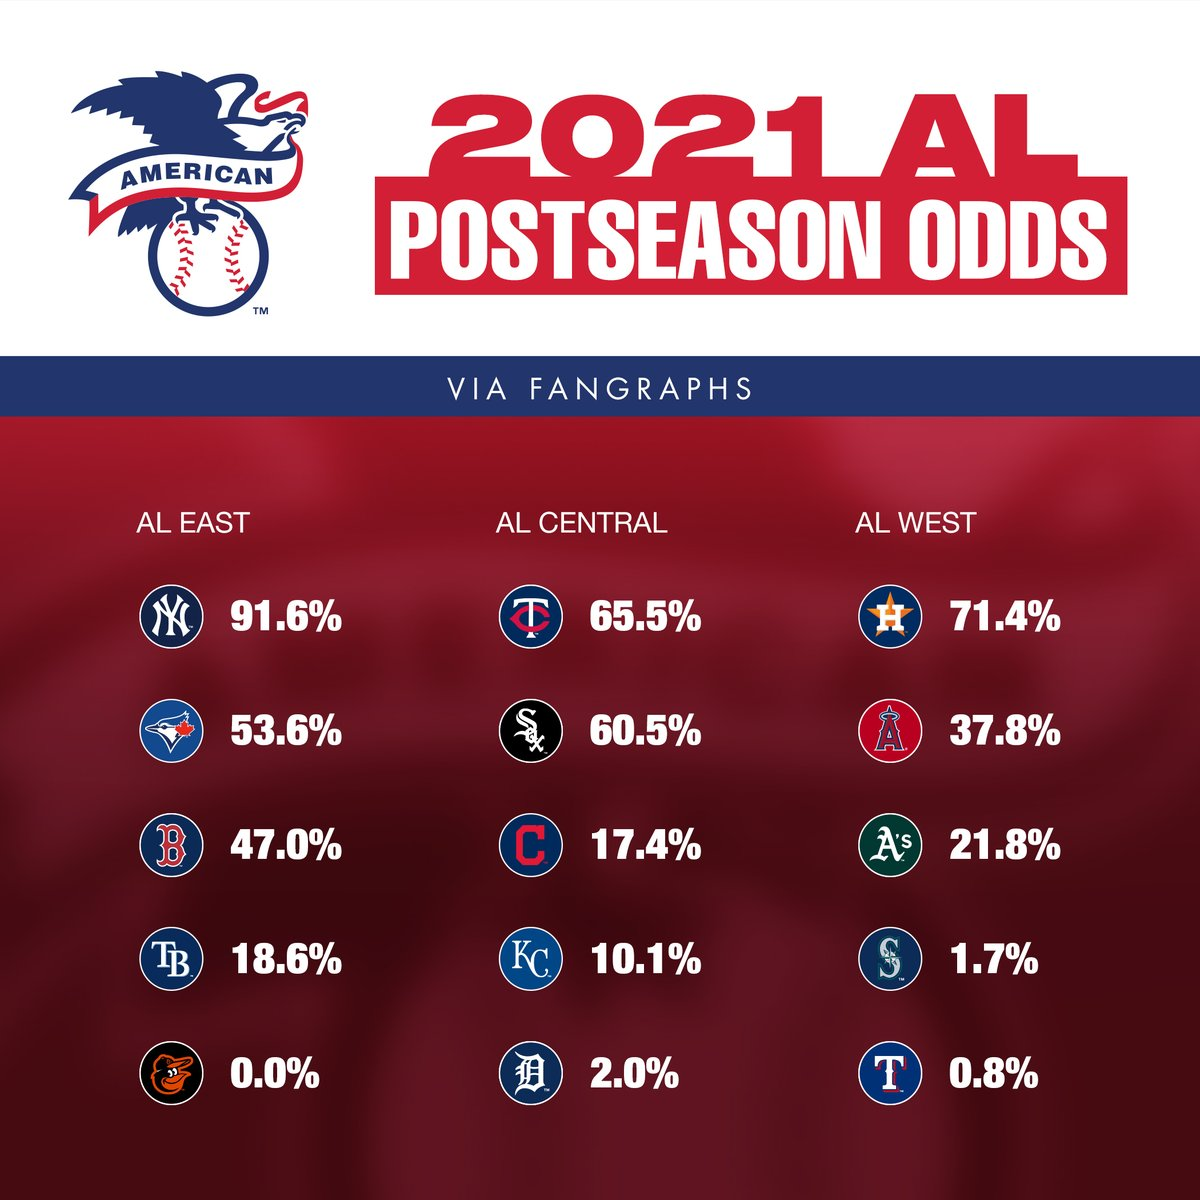 .@fangraphs has announced their projected postseason odds. 👀  Let us know what you think ⬇️